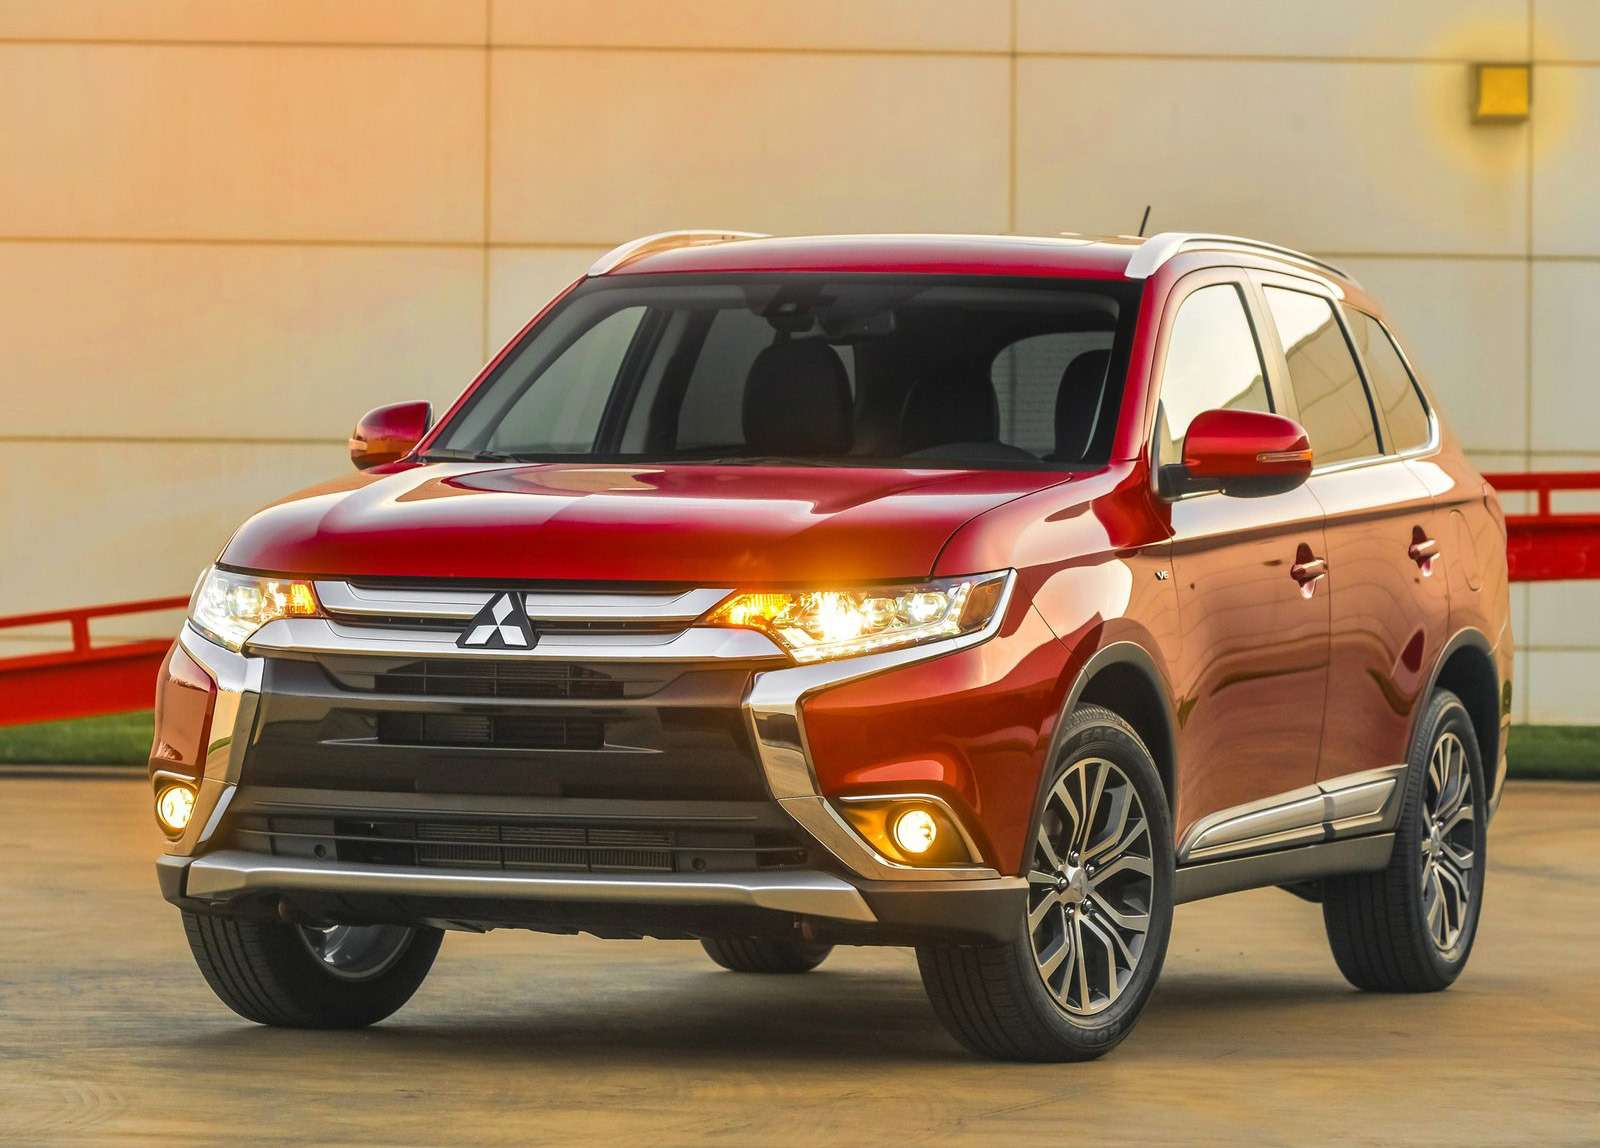 Mitsubishi-Outlander_2016_1600x1200_wallpaper_01 (1)